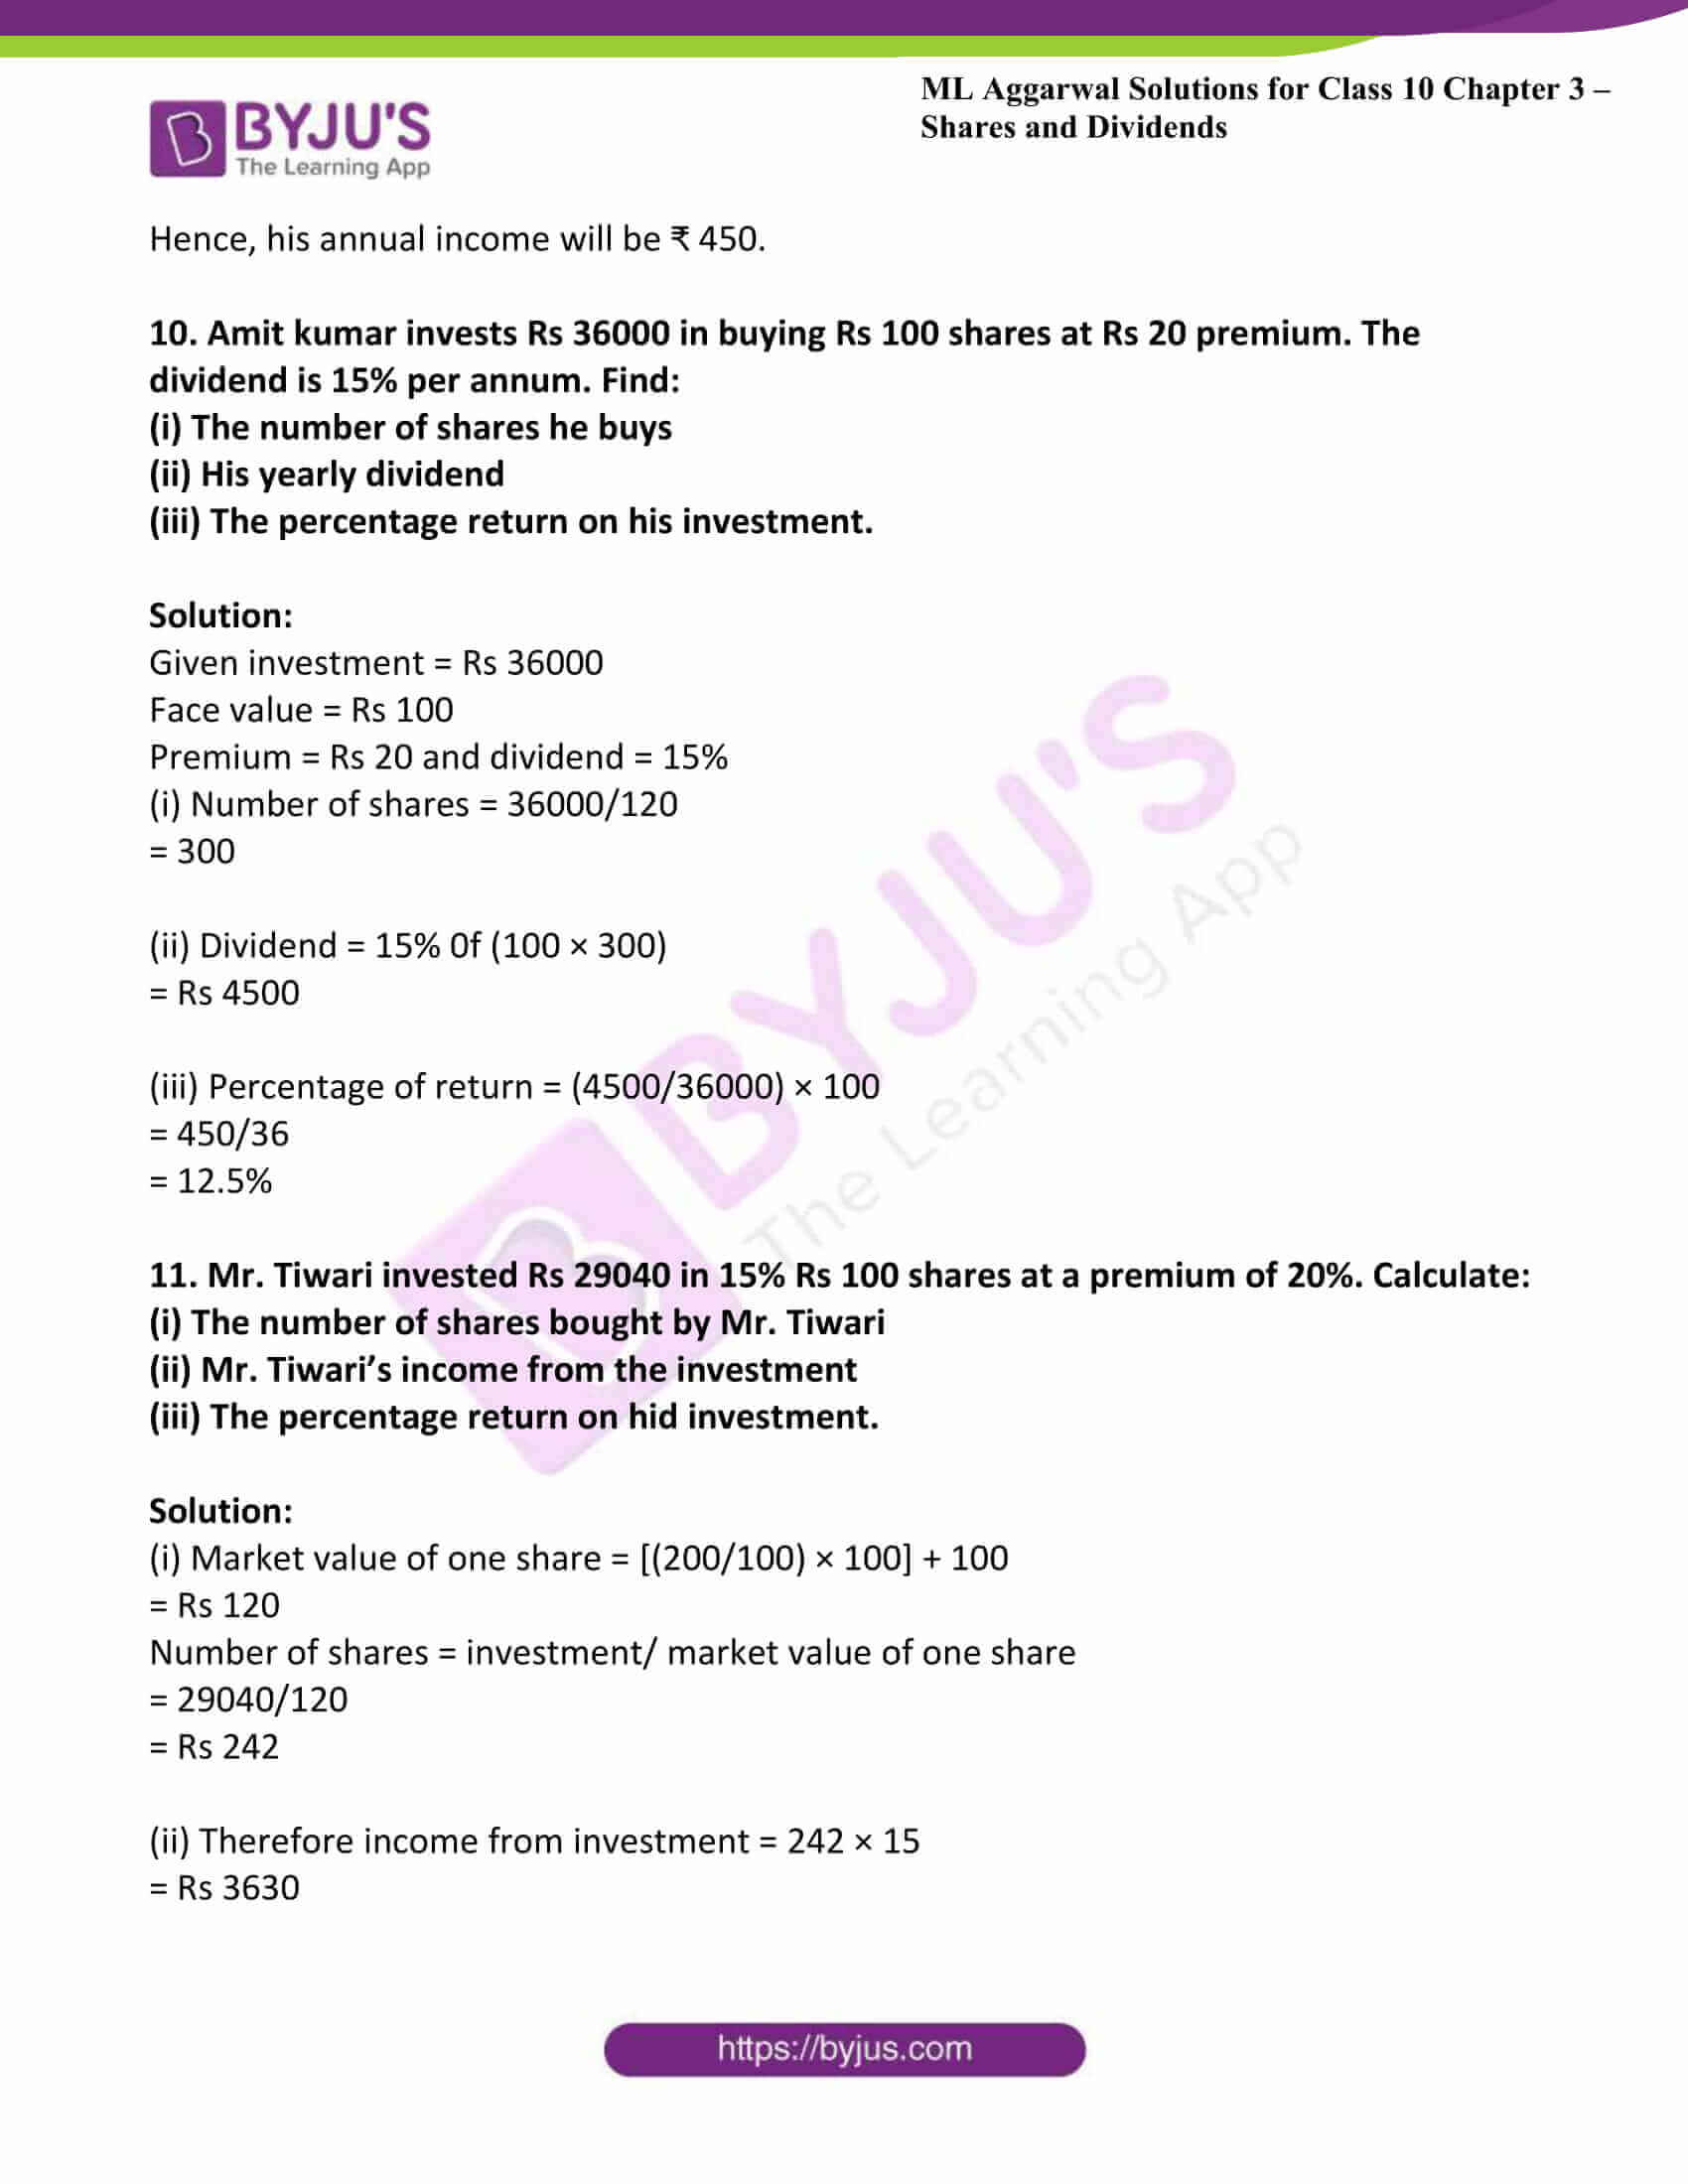 ml aggarwal solutions class 10 maths chapter 3 05